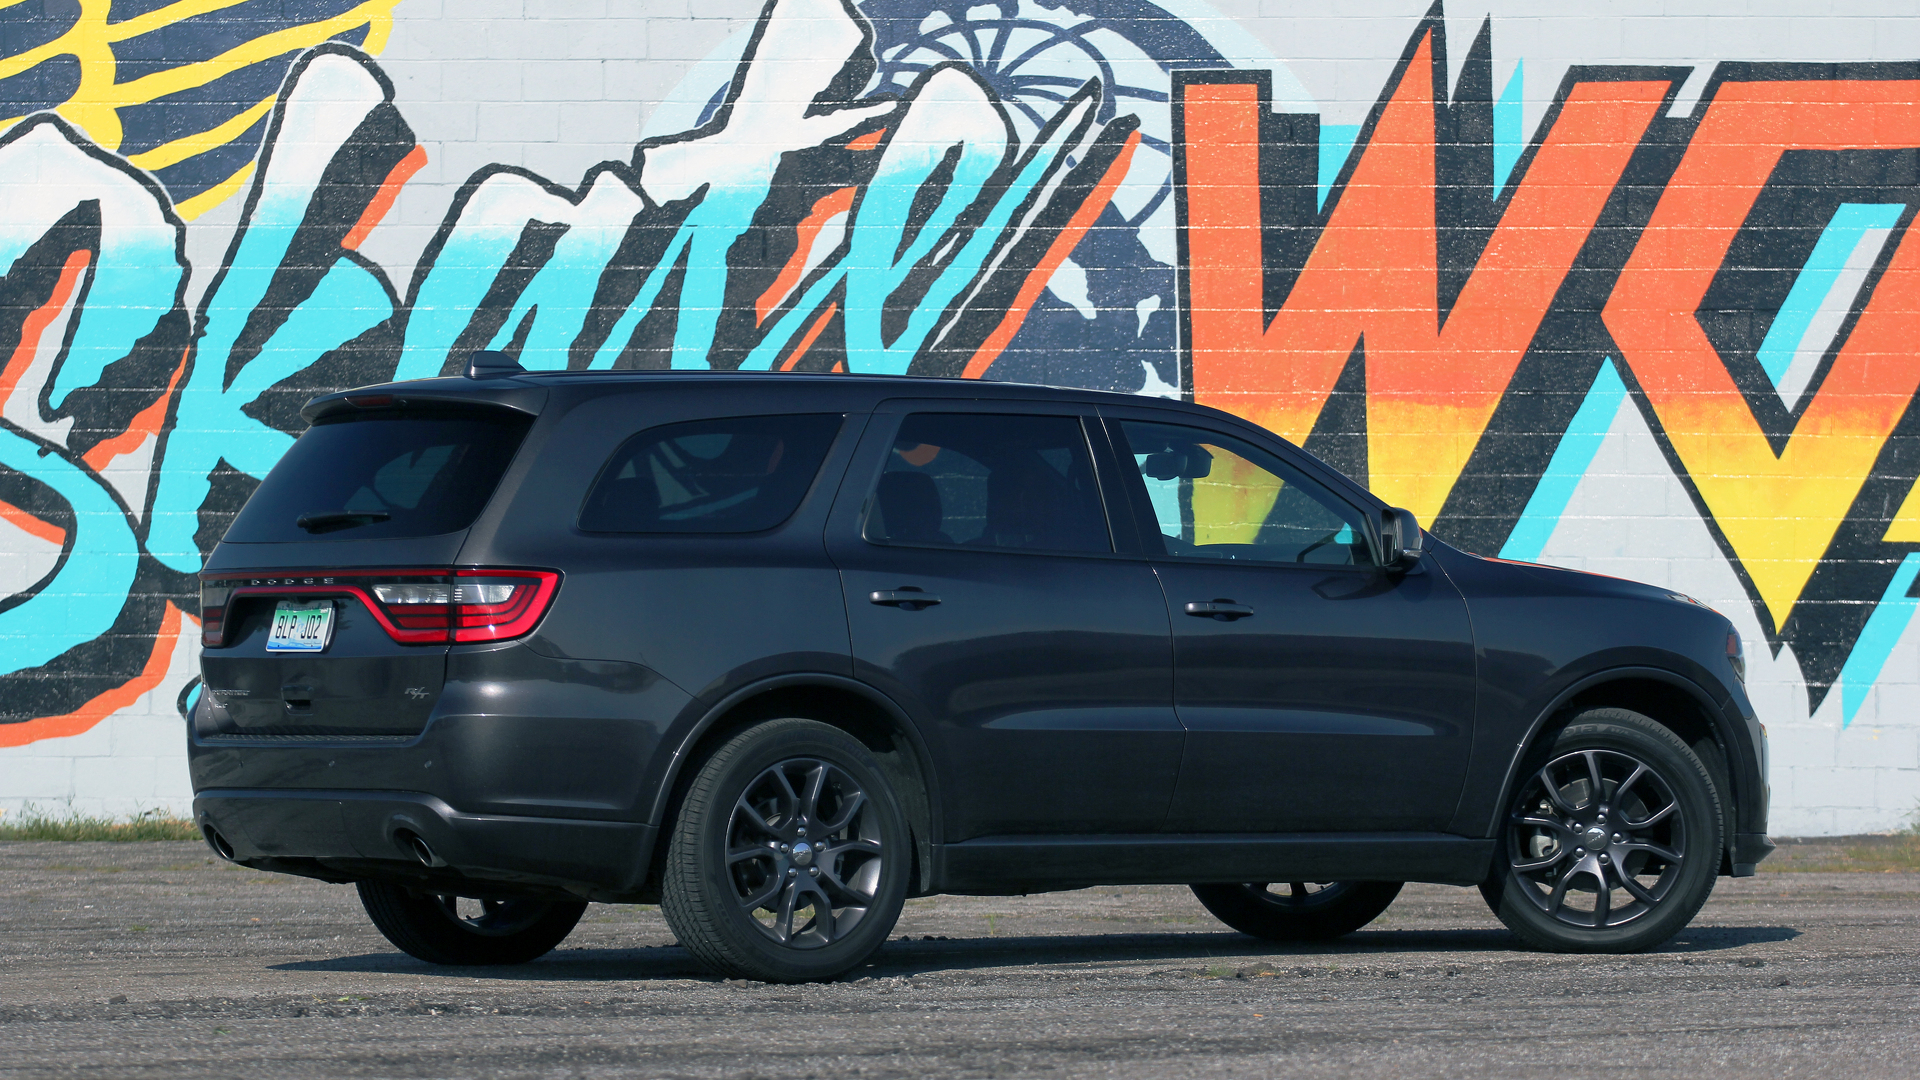 Review: 2016 Dodge Durango R/T